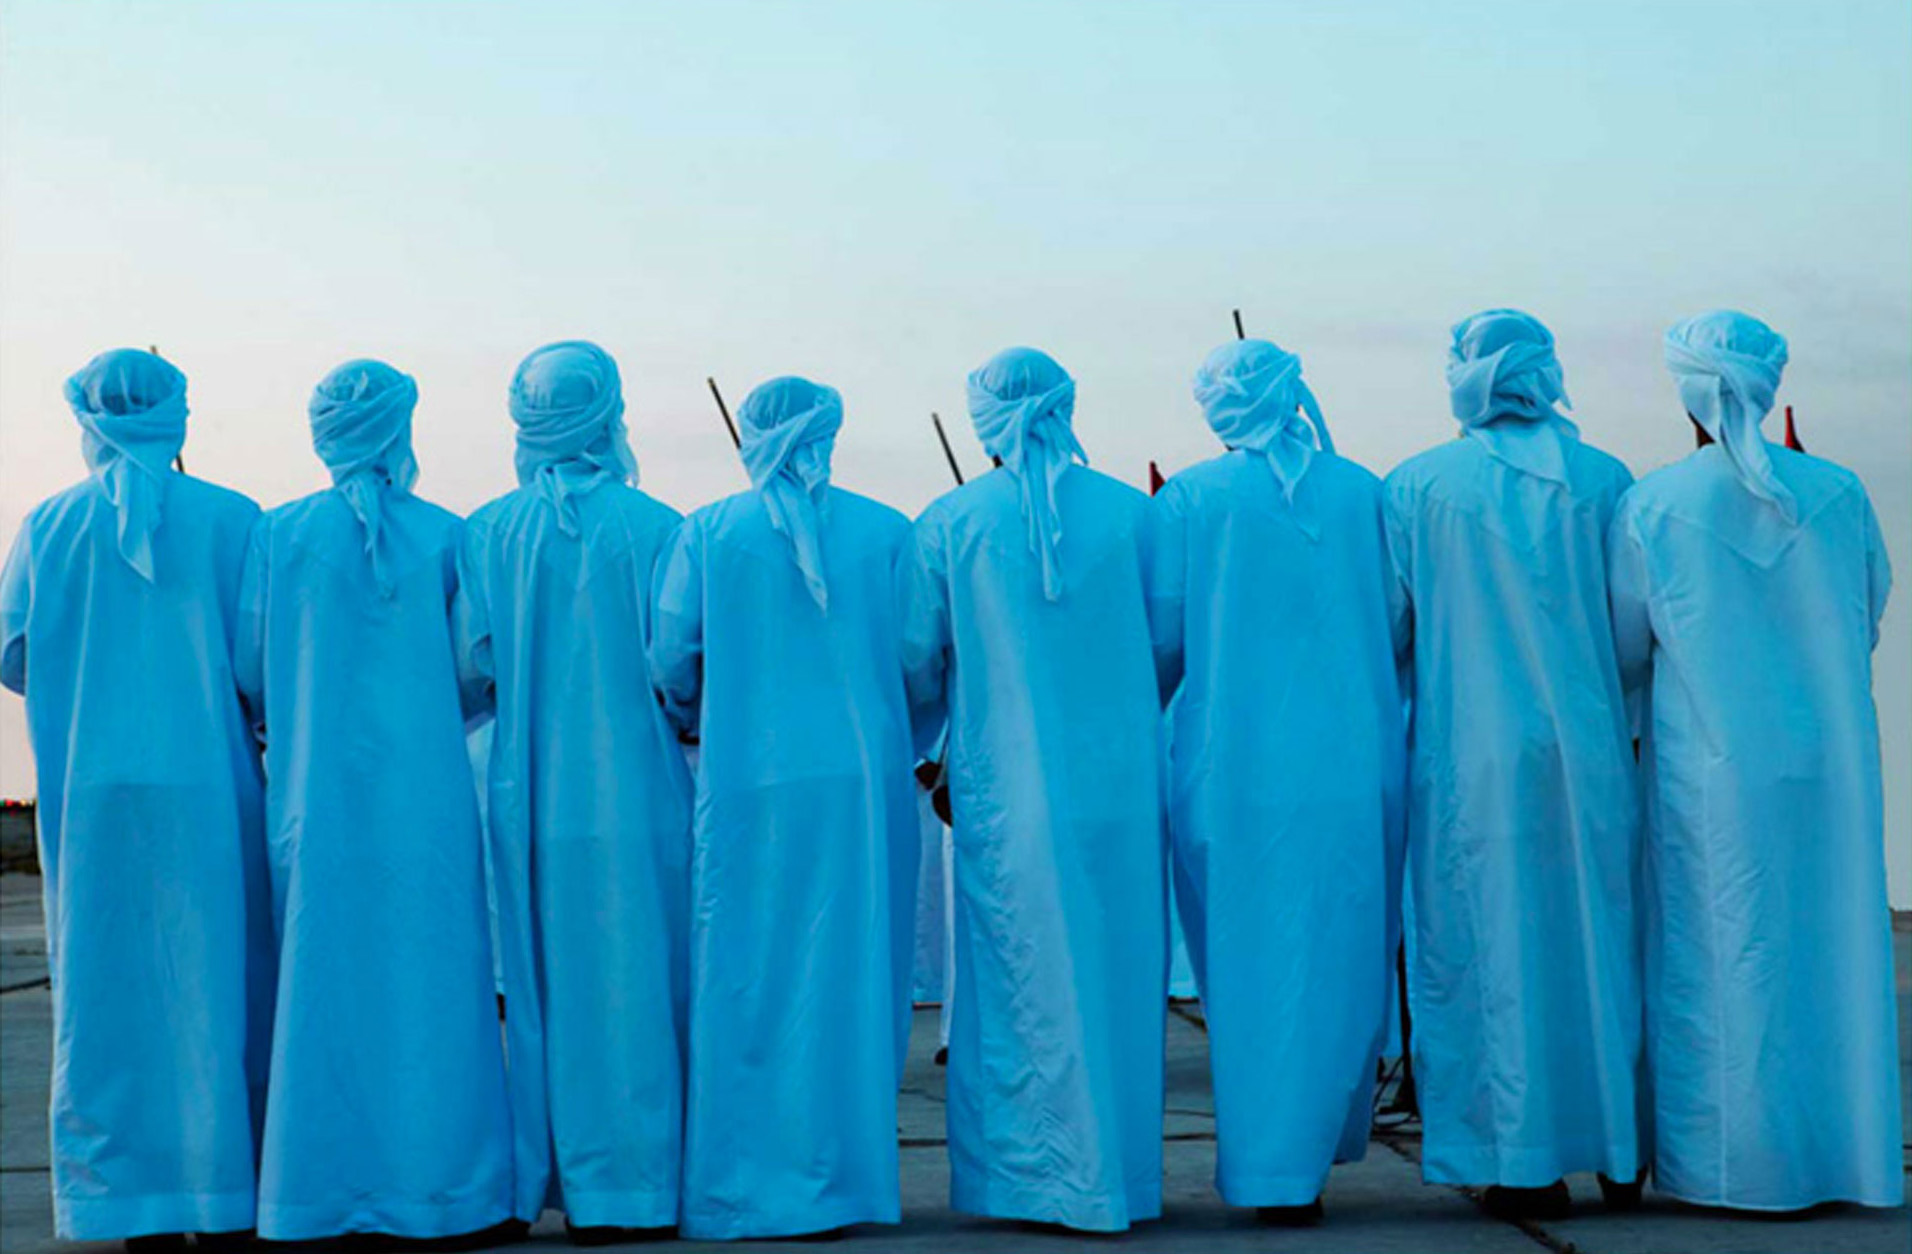 Jason Florio photographer - color image of a line of blue robed men, with their backs to the camera, ceremonial dance, Beirut